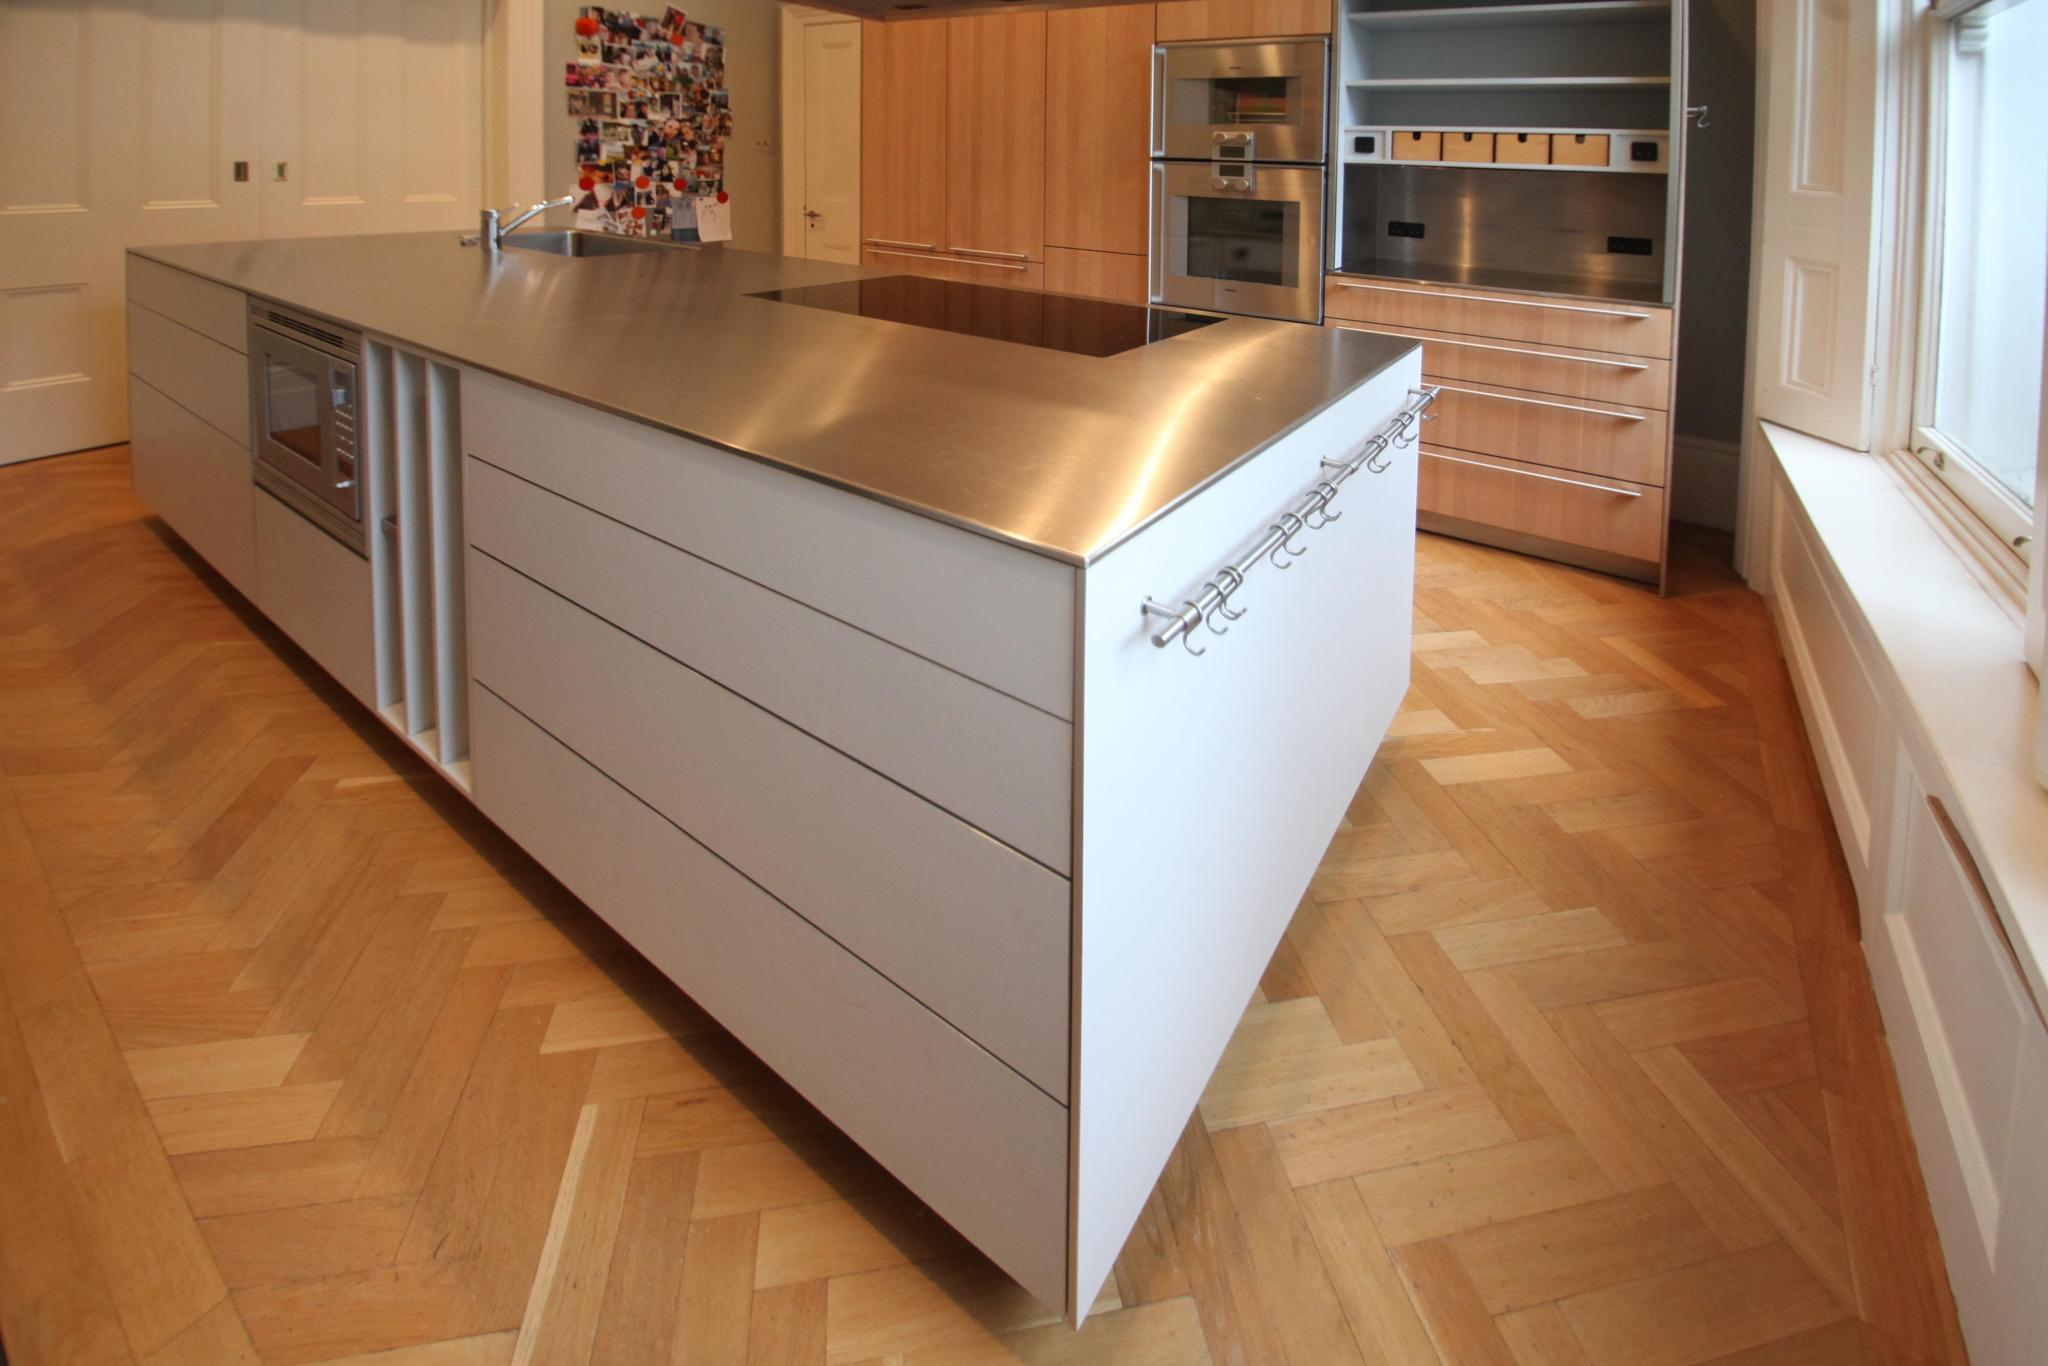 BULTHAUP Designer German Used Kitchen with Island ...